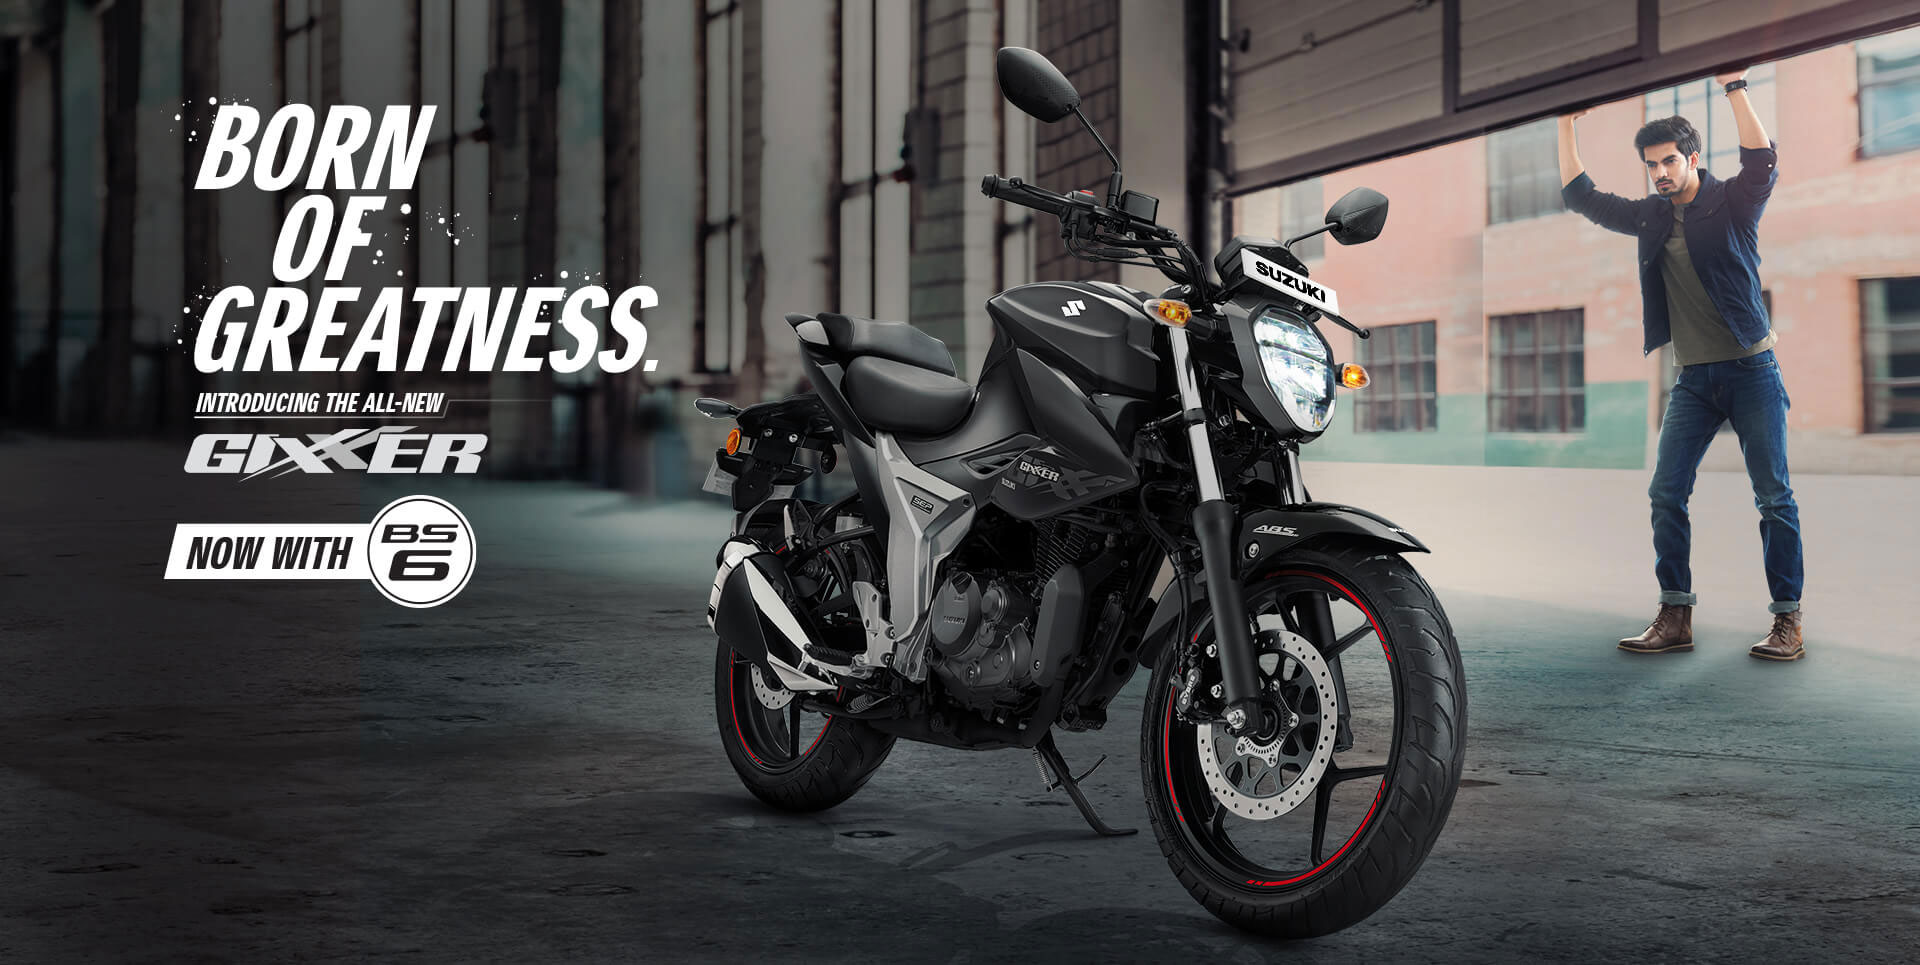 Best 150cc Bikes of India Today – Top 10 List